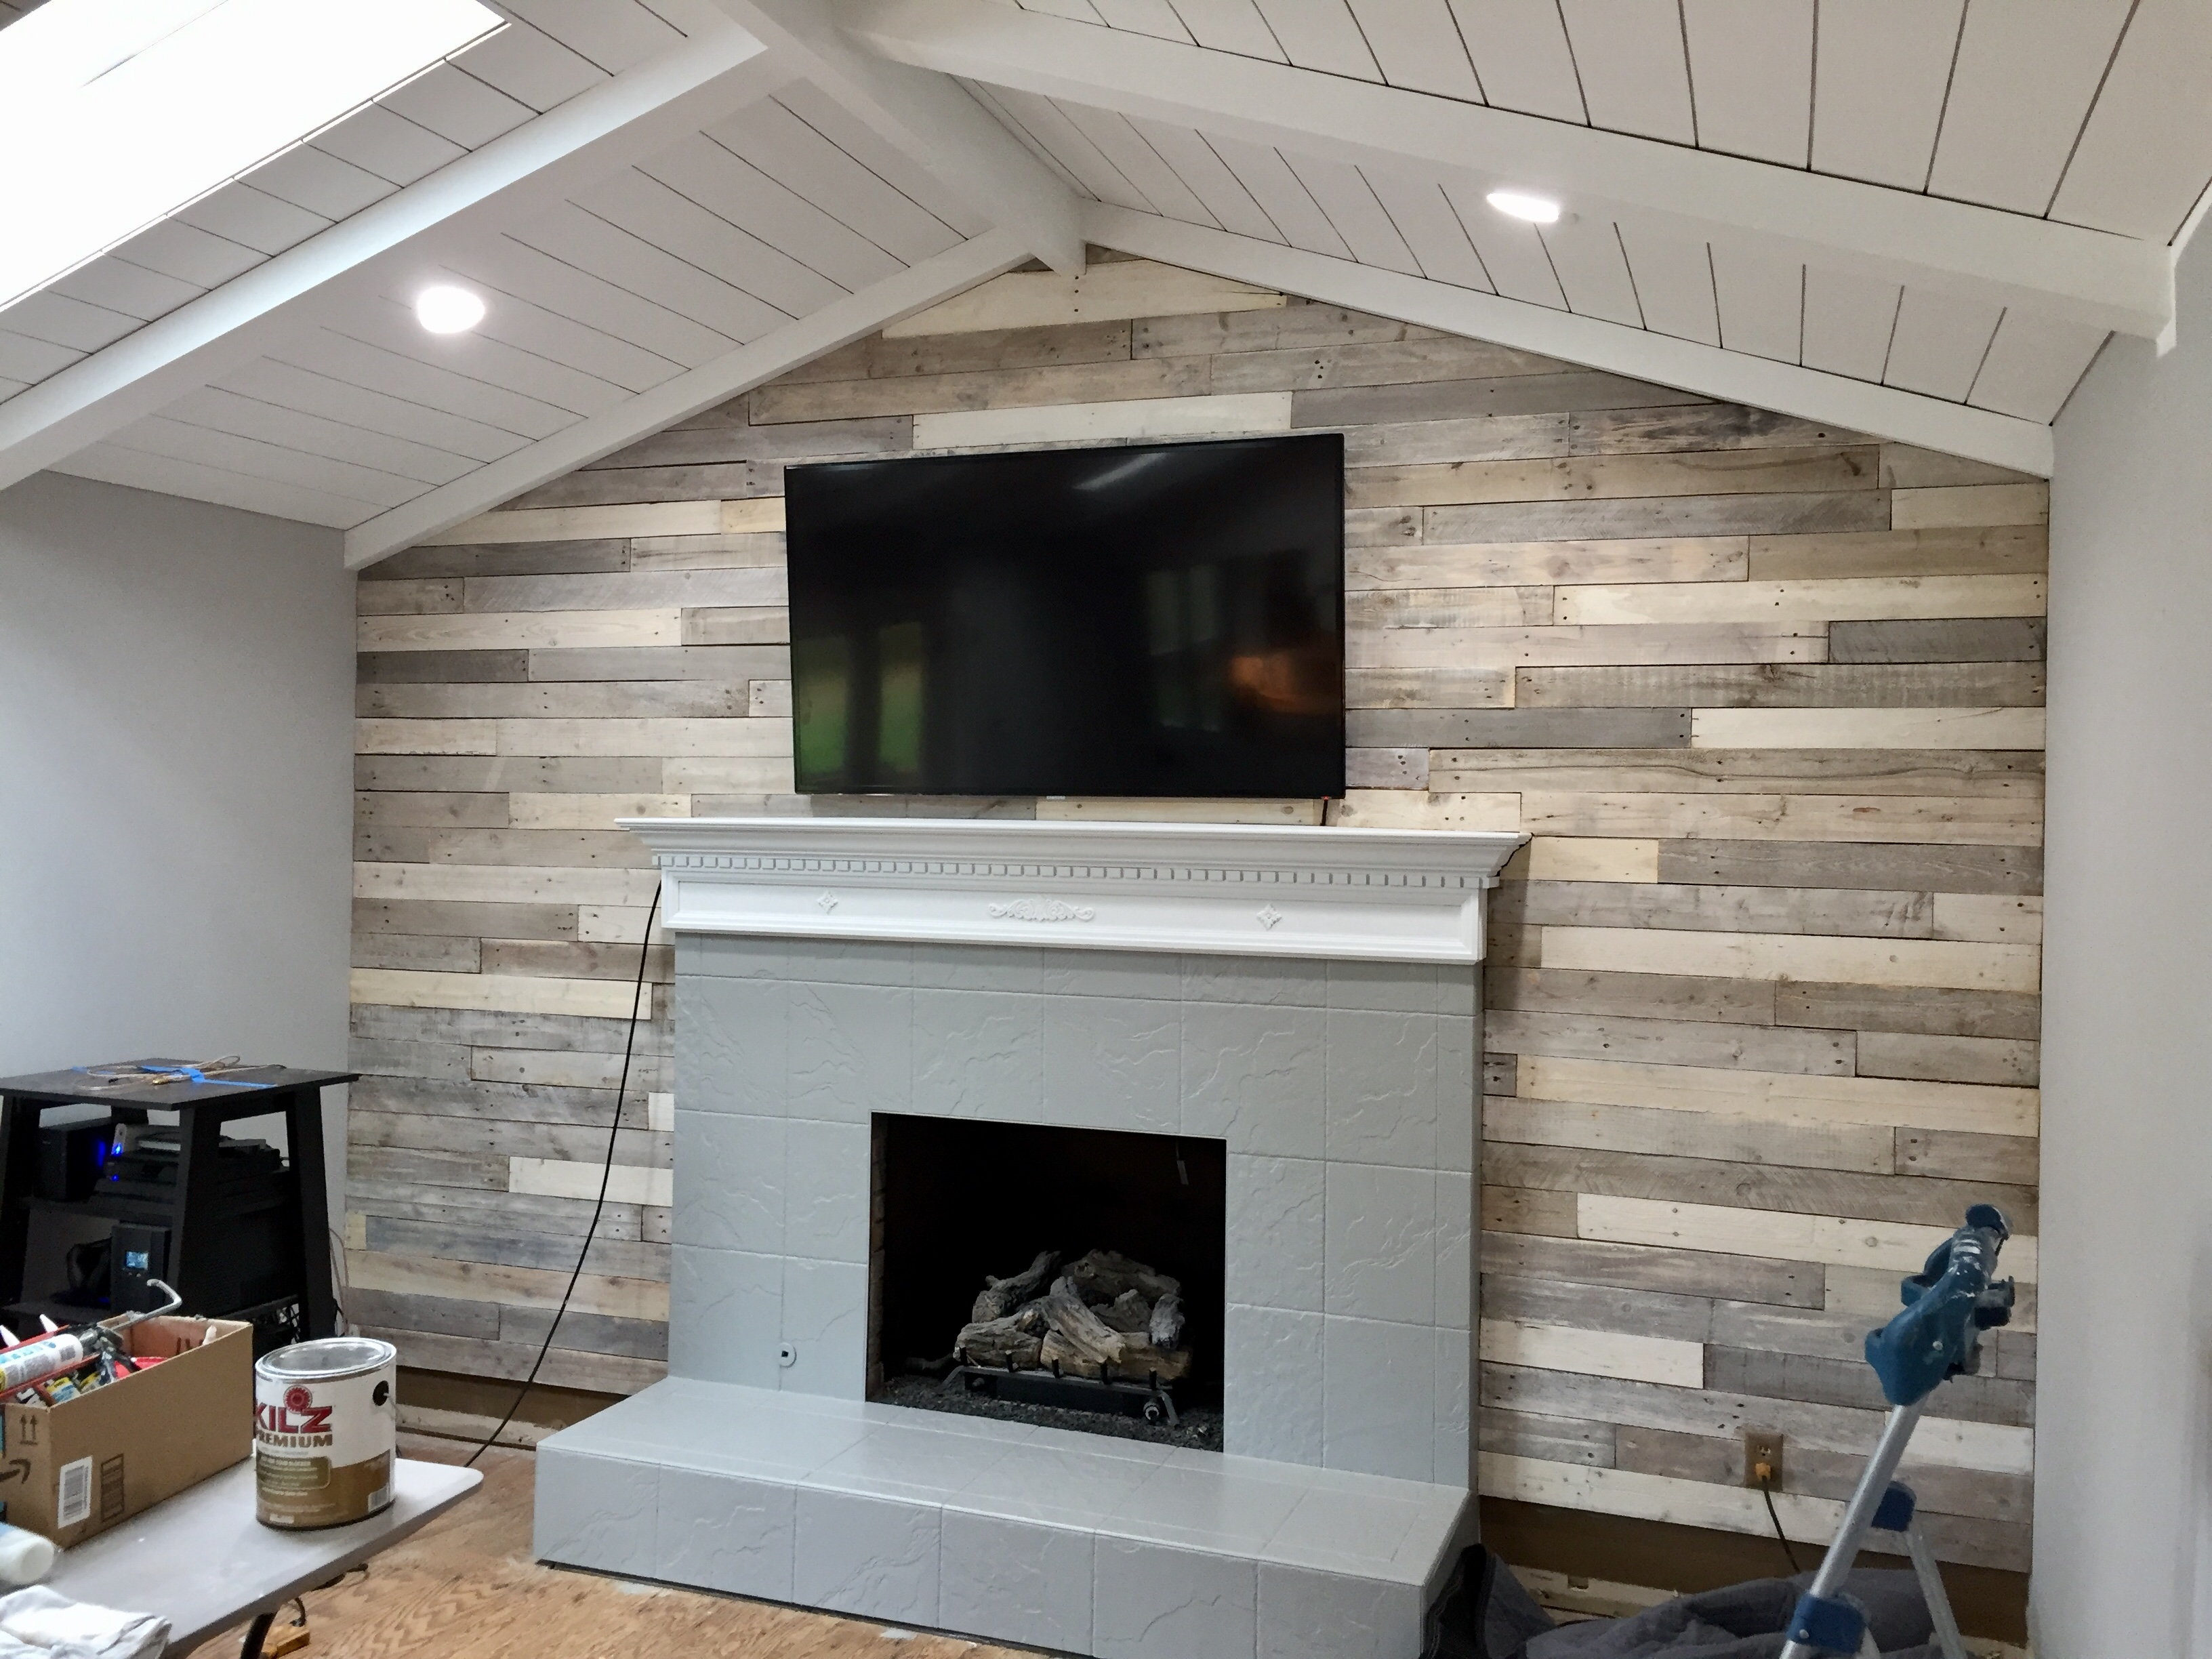 Distressed Build Wood Pallet Wall Make New Look Old Aged Weathered